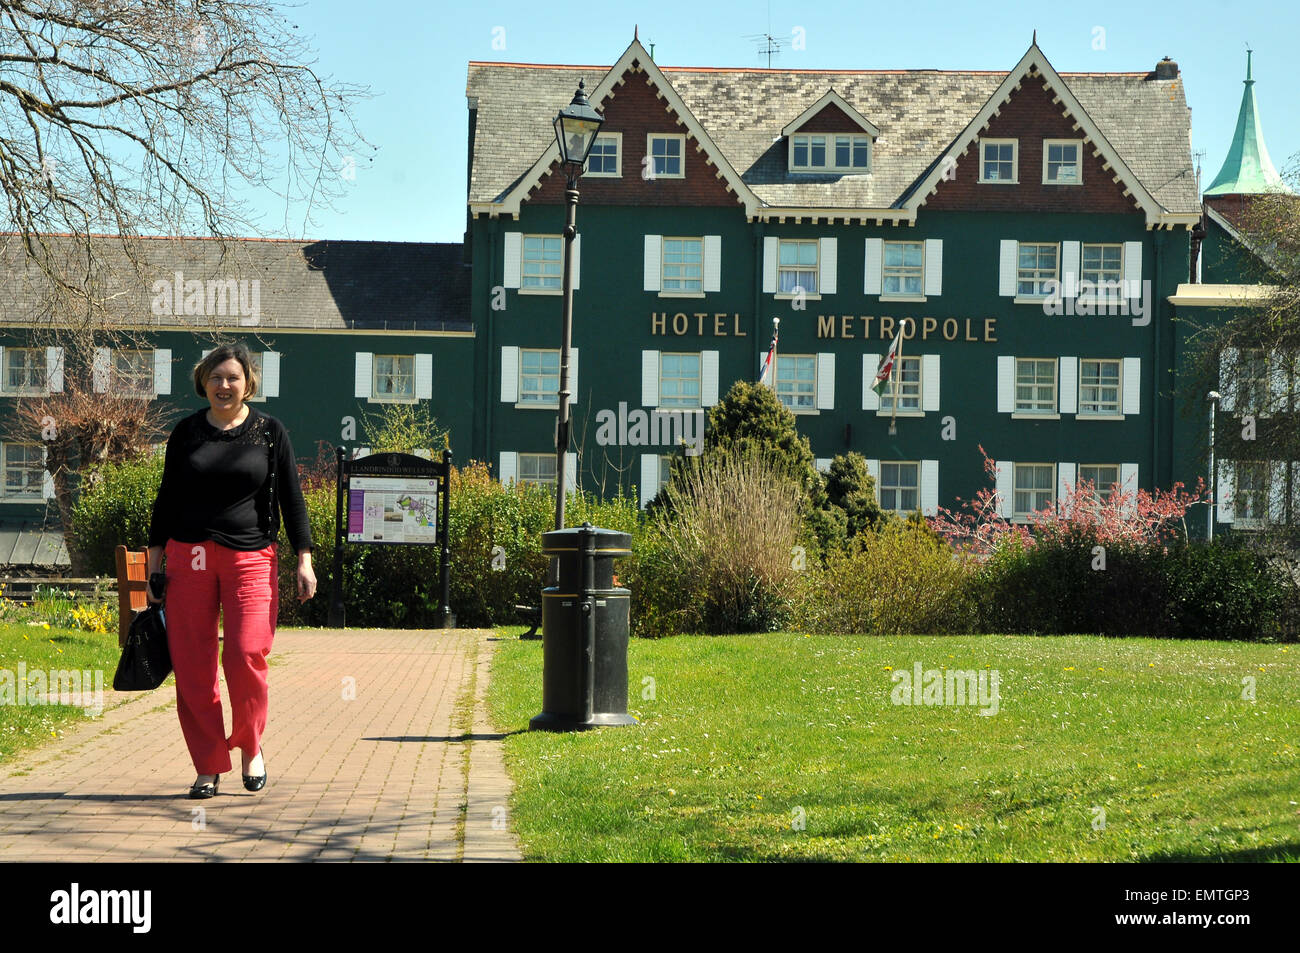 A woman walking to work in front of the Metropole Hotel in Llandrindod Wells - Stock Image